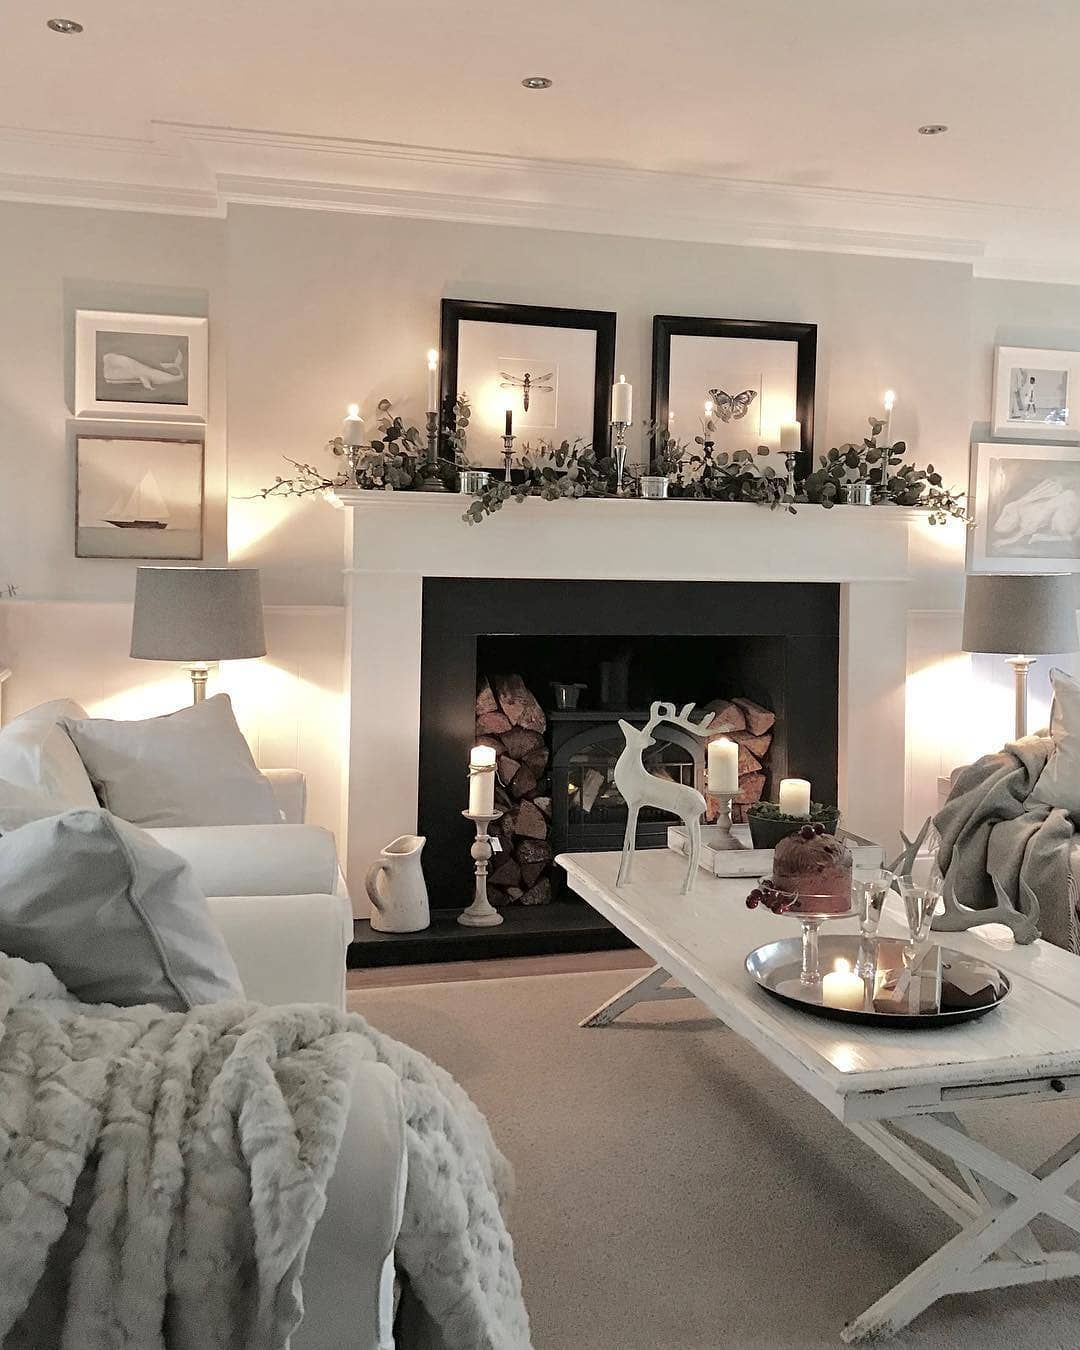 Decoration Salon Salle A Manger Cosy Homes Of The Uk Homesoftheuk Instagram Photos And Videos